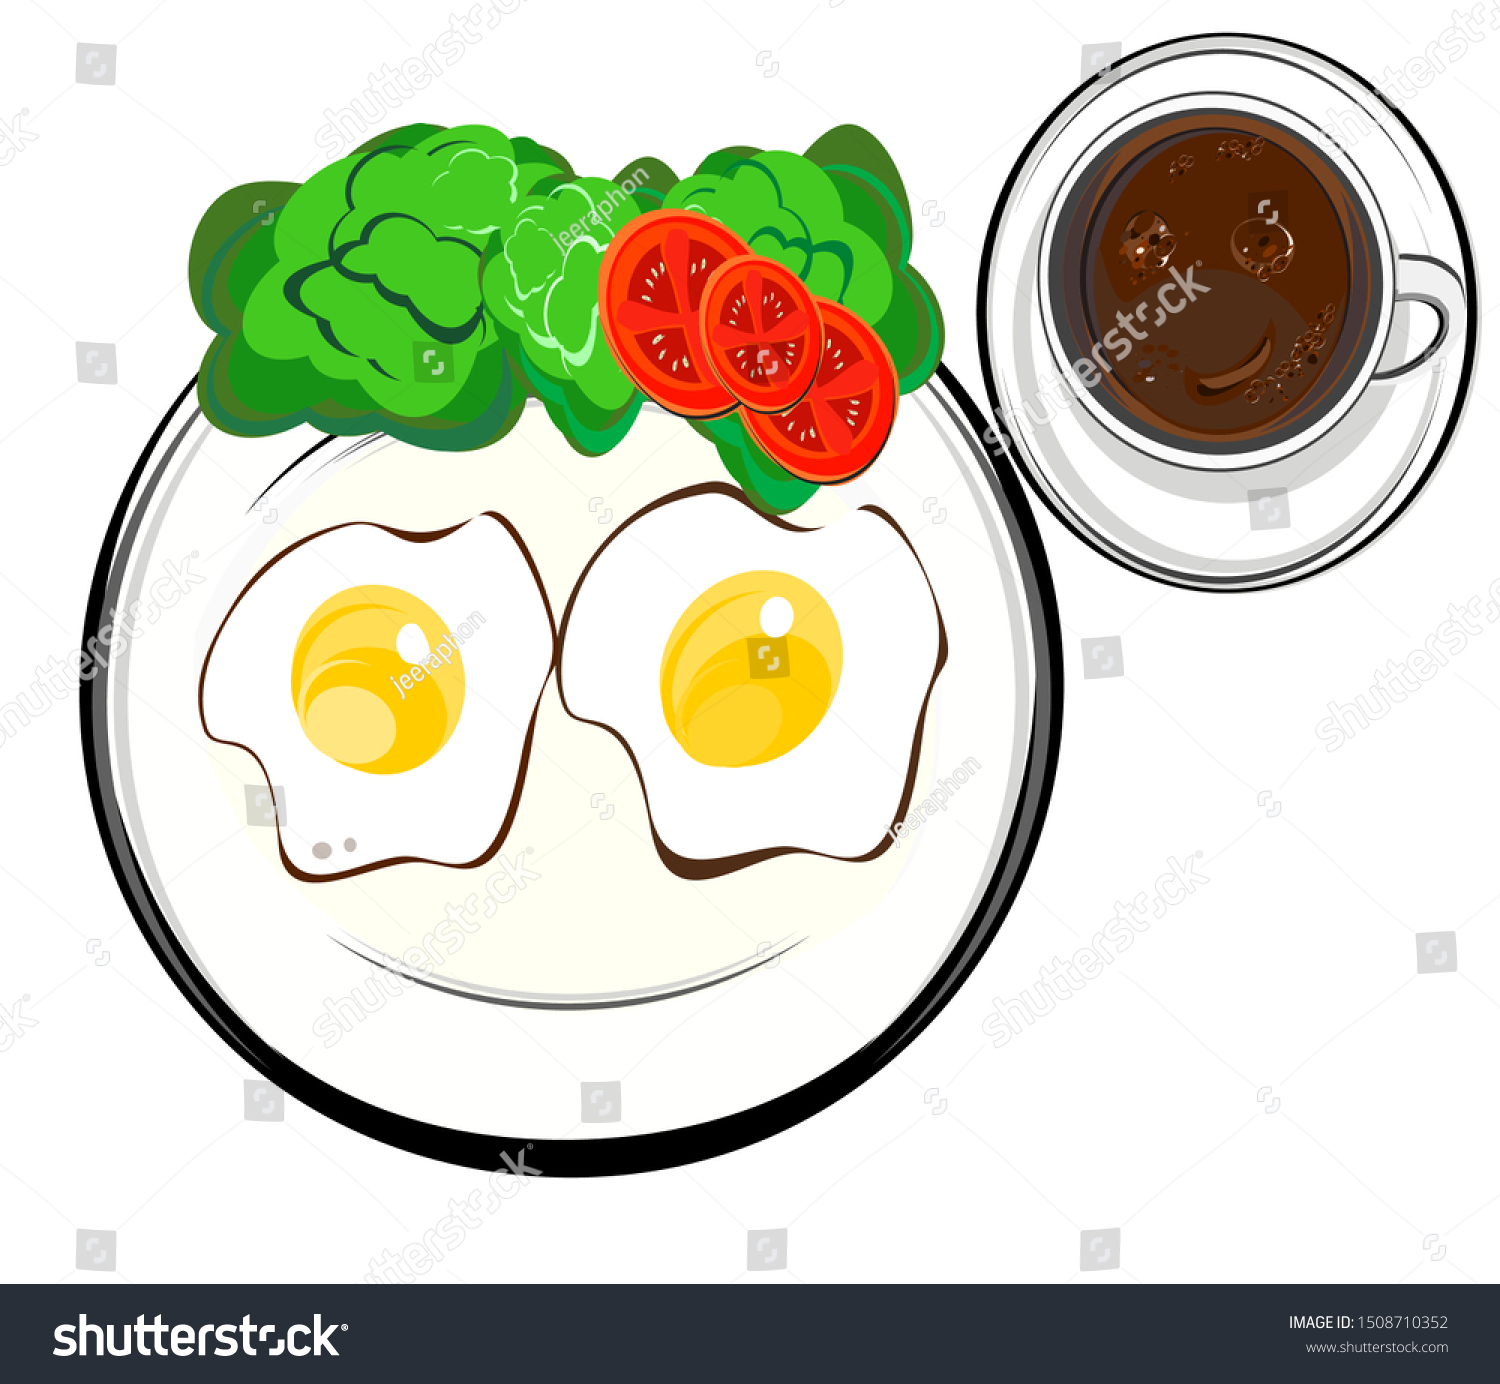 Breakfast Plate Fried Eggs Glass Hot Stock Vector Royalty Free 1508710352